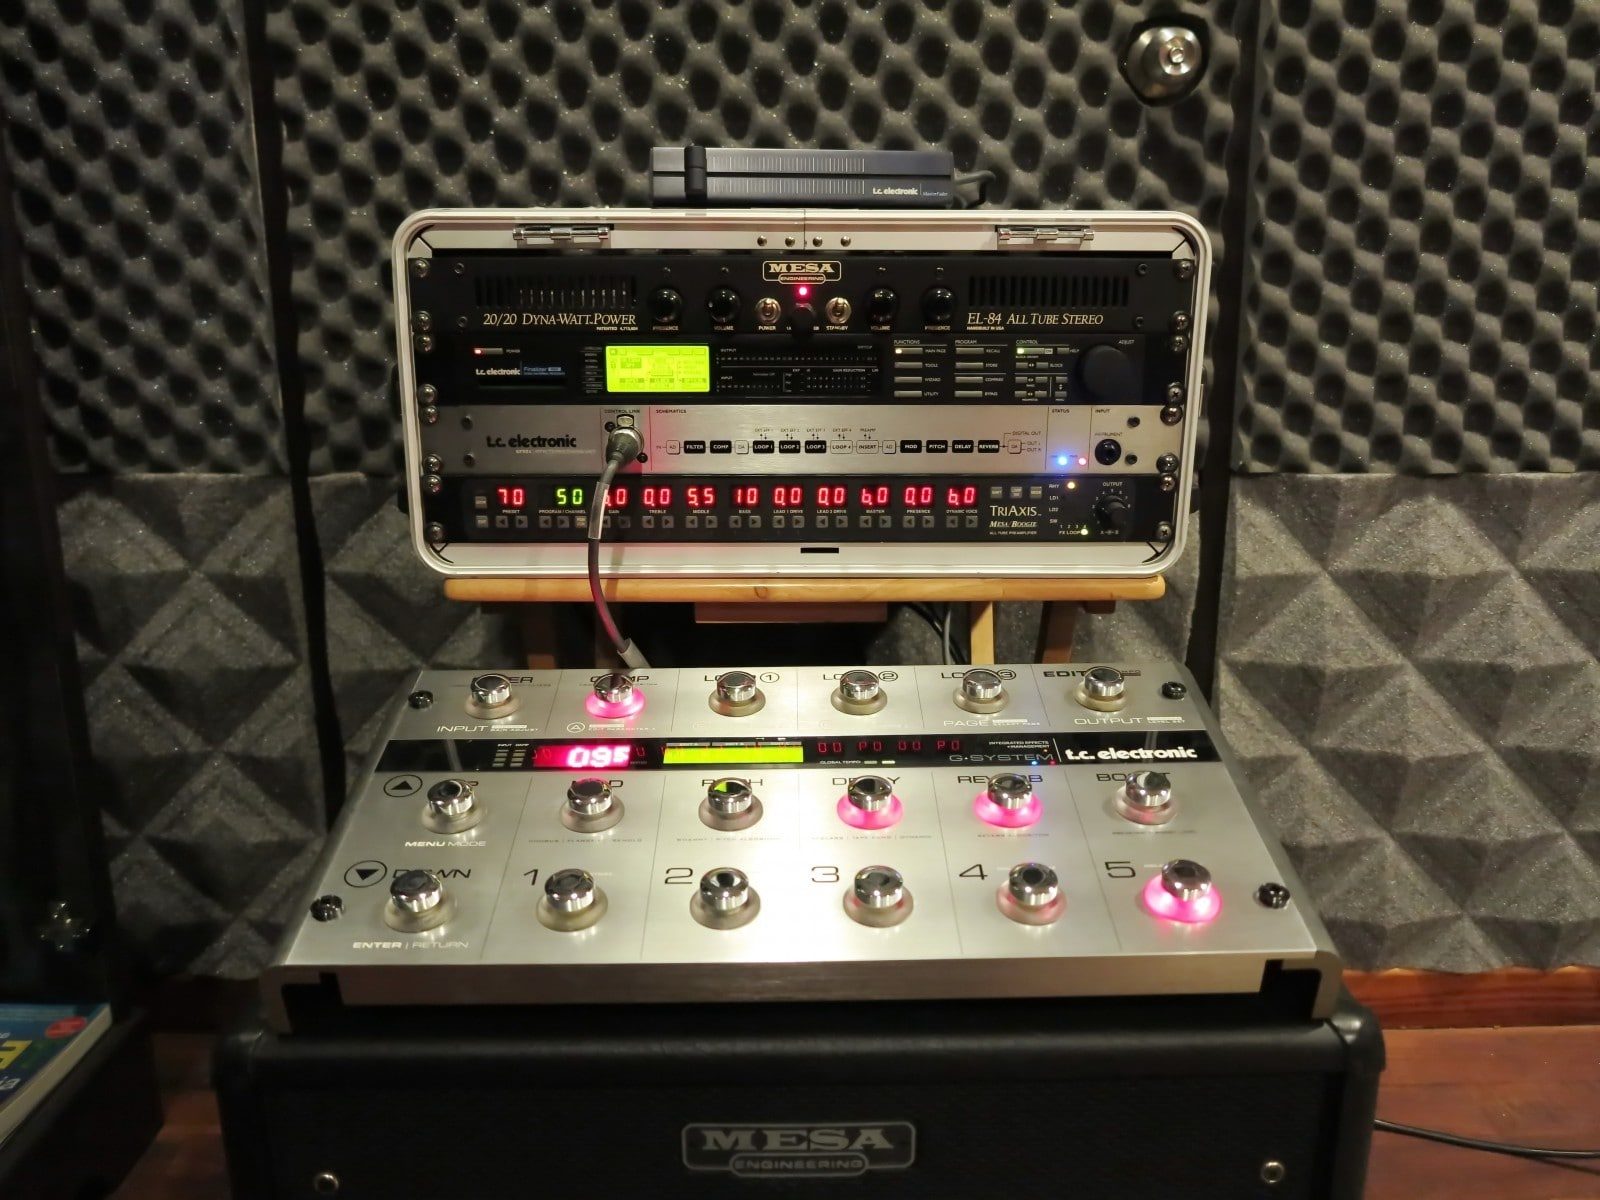 Professional guitar system racked perfect for record,perform – ฿85000 (Phuket)